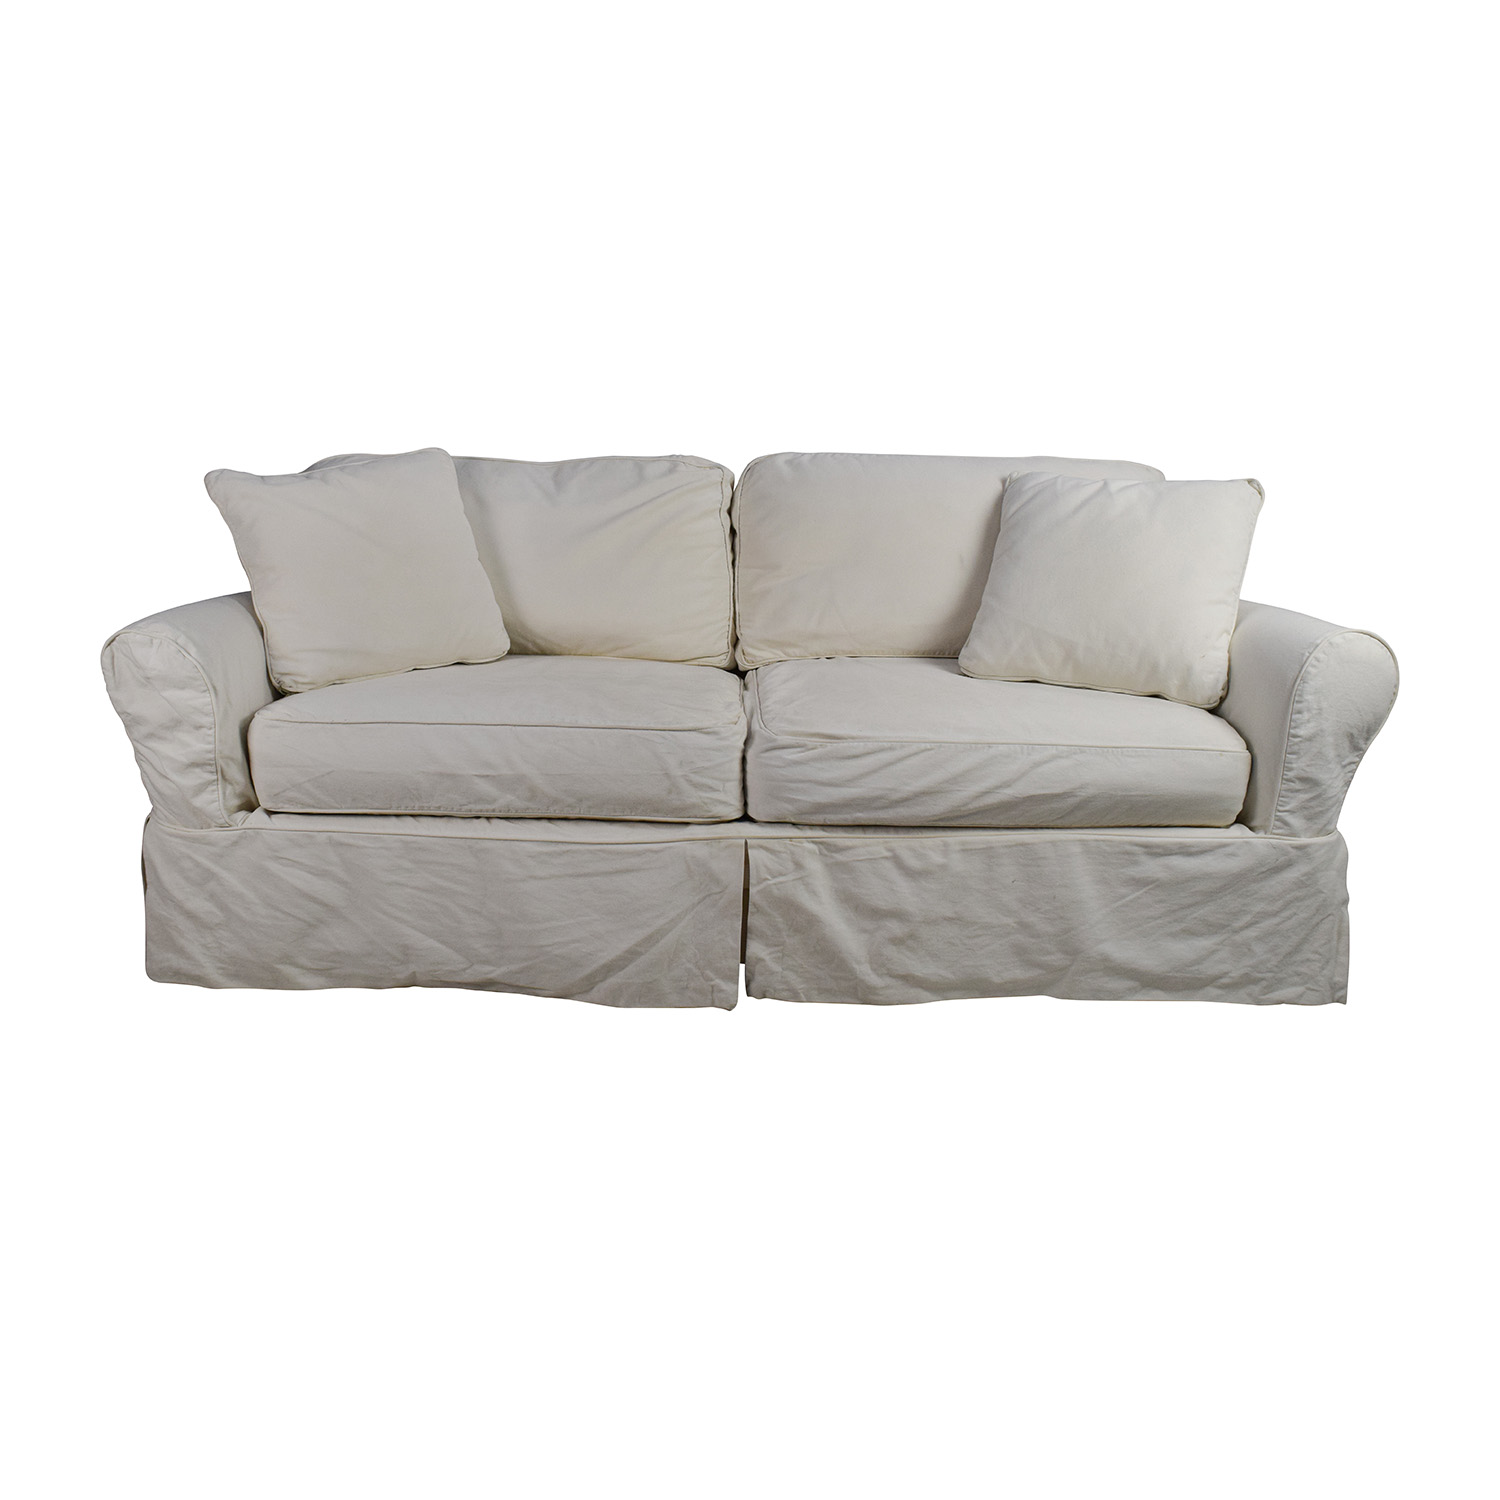 broyhill landon sofa brightly coloured beds raymour flanigan taraba home review